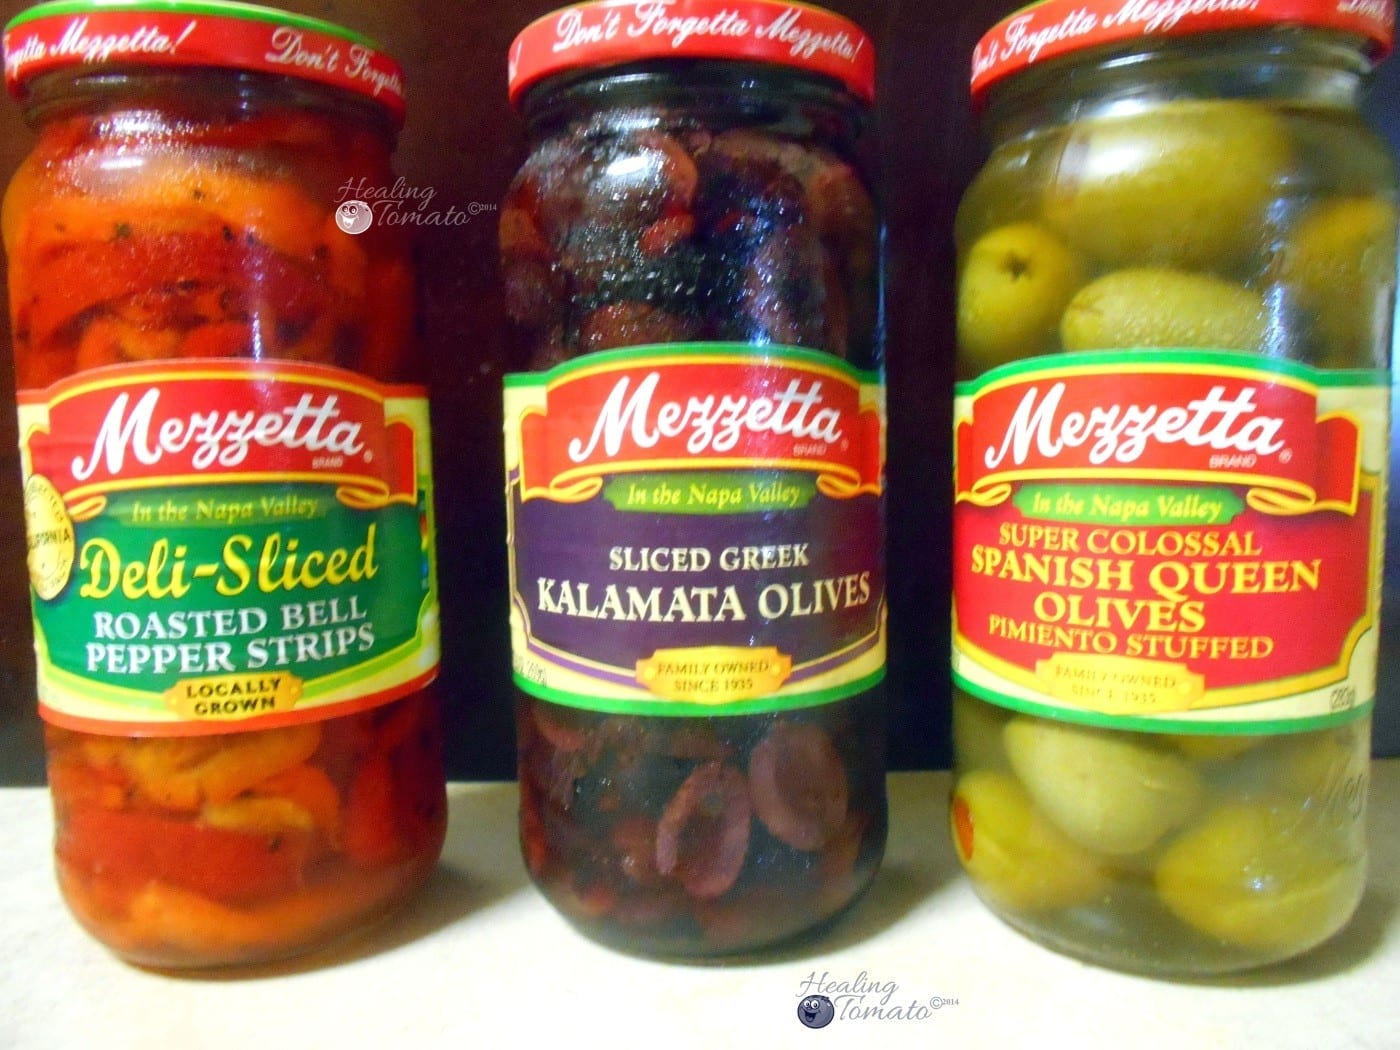 Front view of 3 mezzetta products in a glass jar